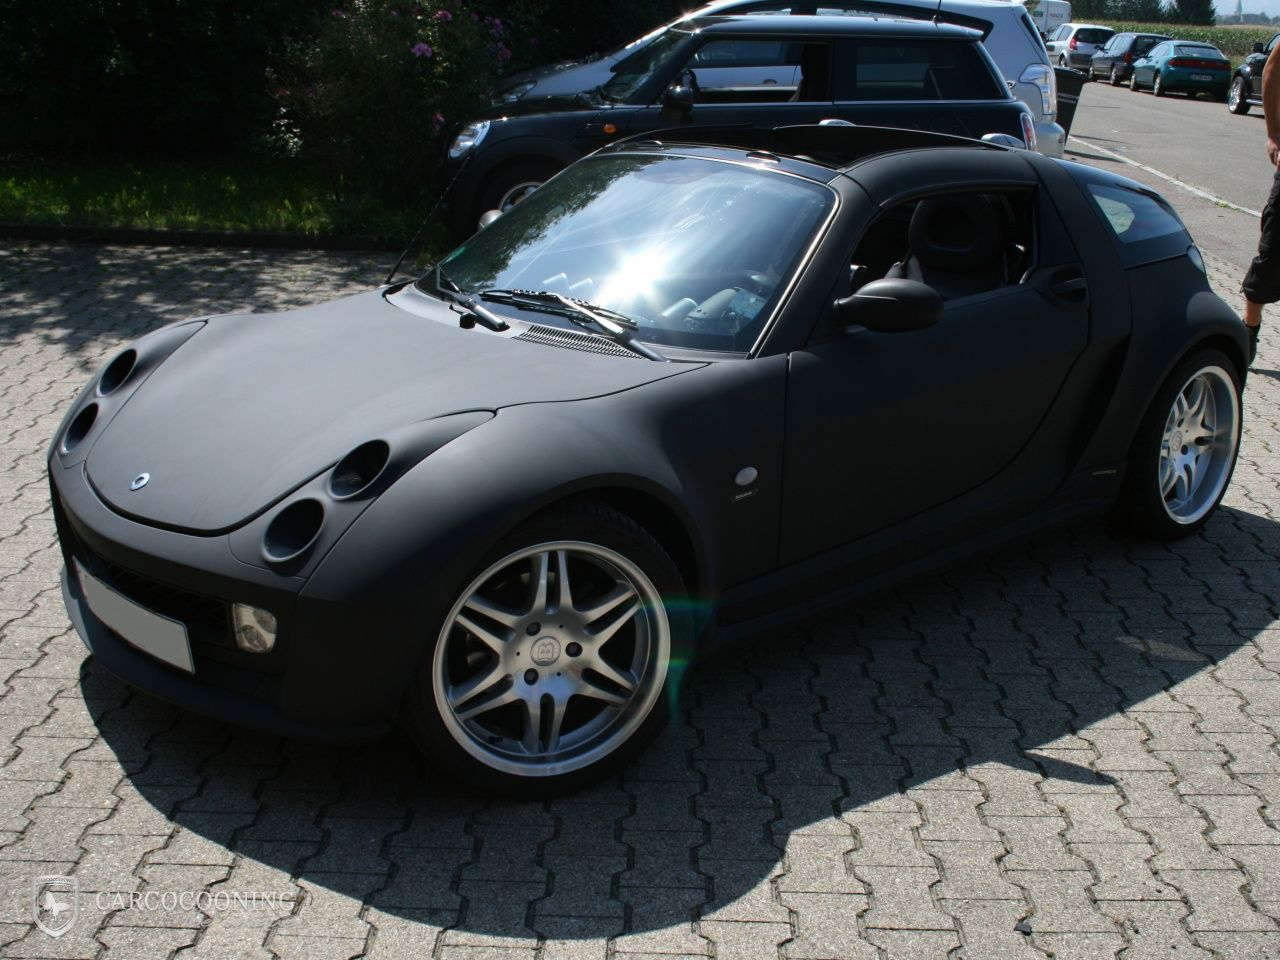 Folierung eines Smart Roadster | Smart | Pinterest | Smart ...